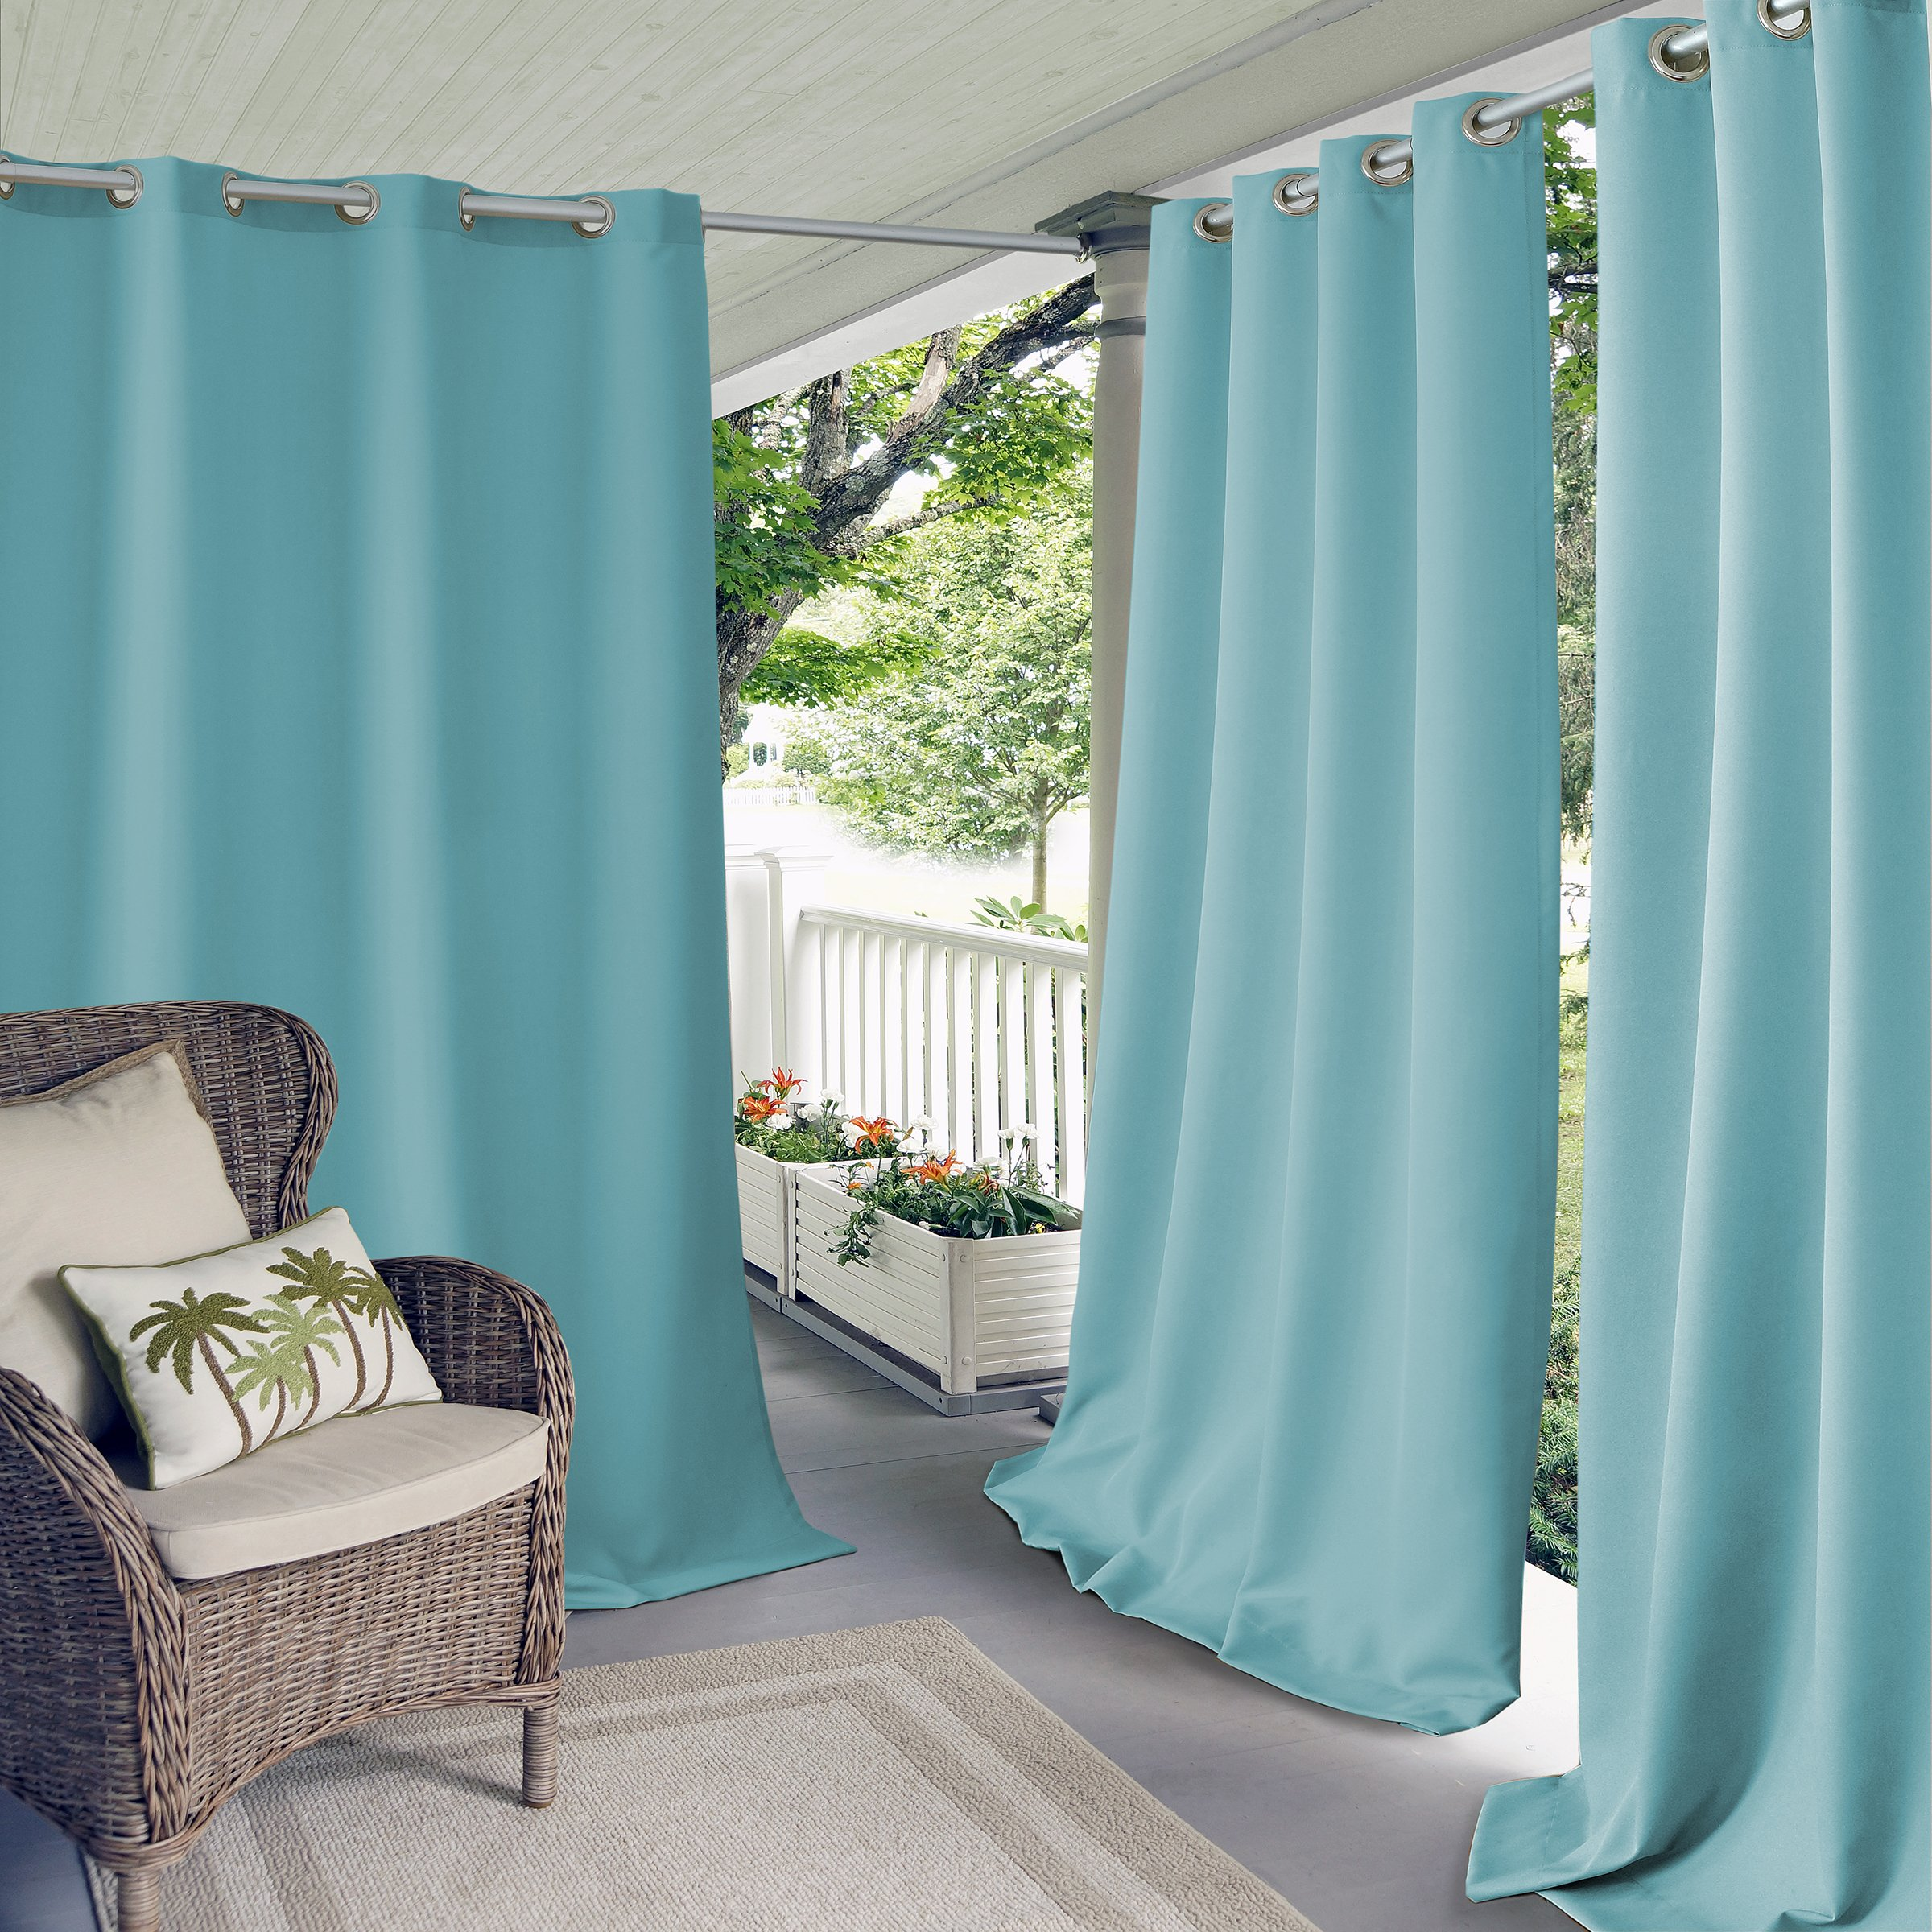 Elrene Home Fashions Connor Indoor/Outdoor Solid Grommet Panel Window Curtain, 52'' x 108'' (1), Turquoise